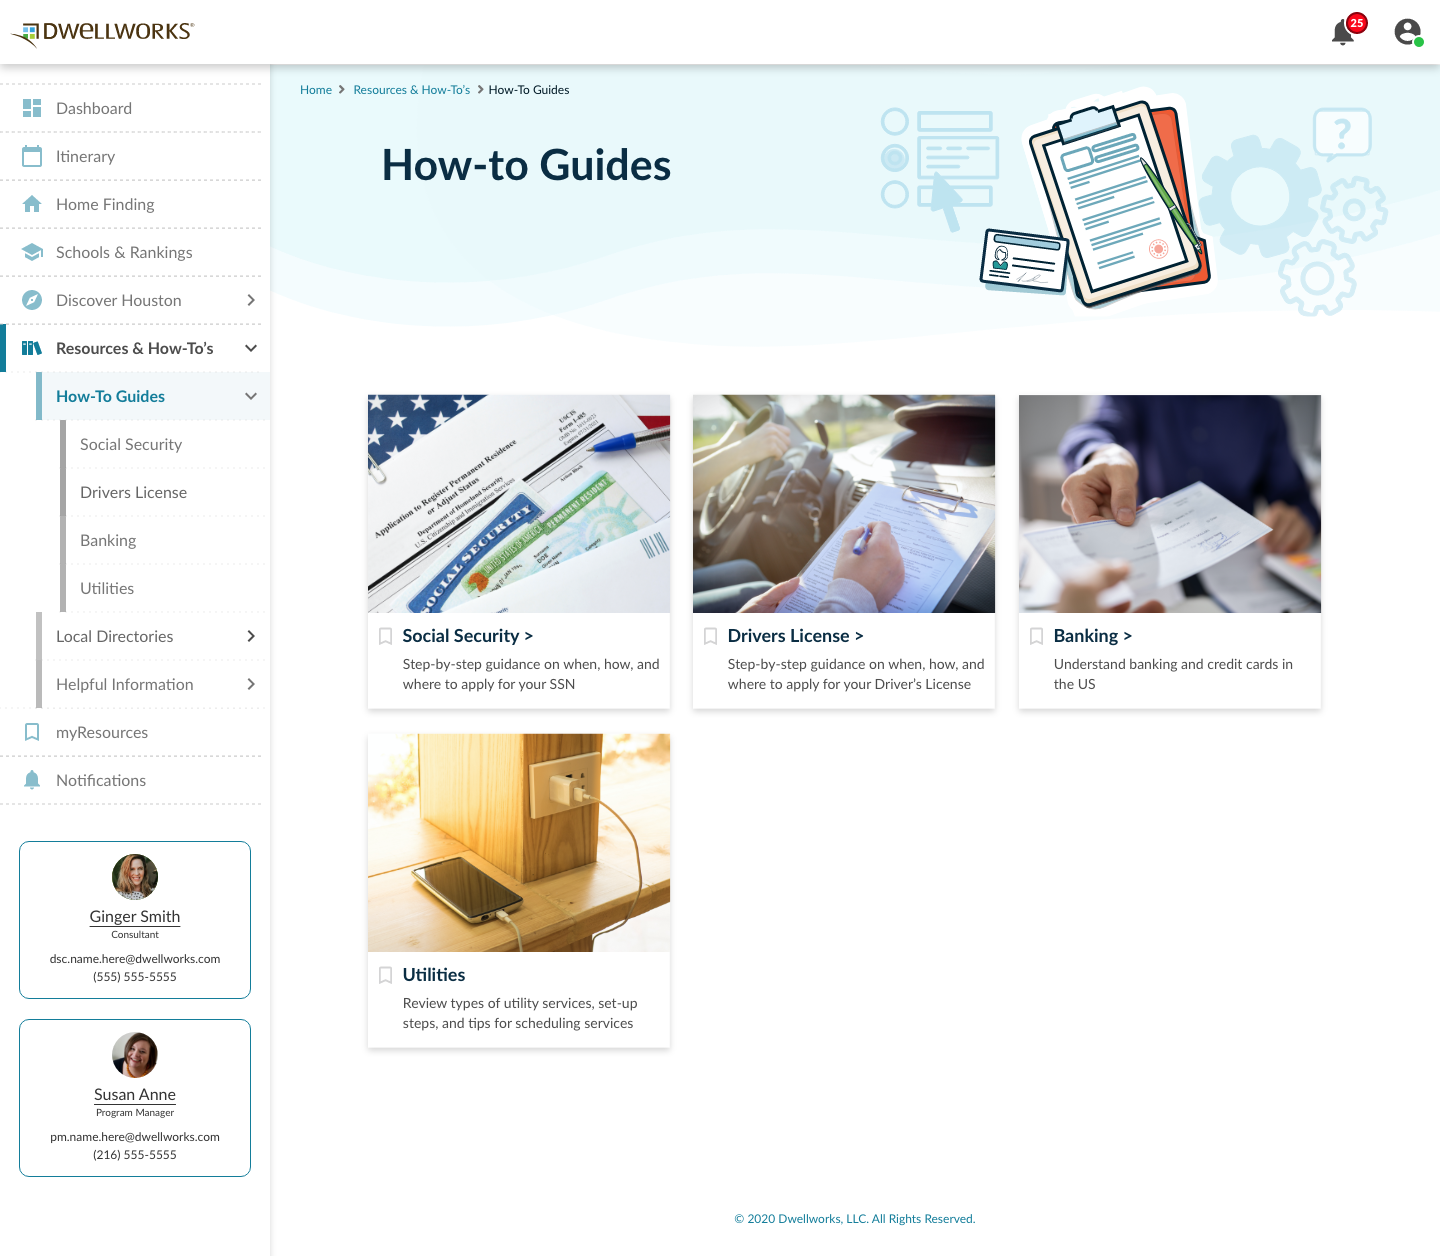 HowToGuides